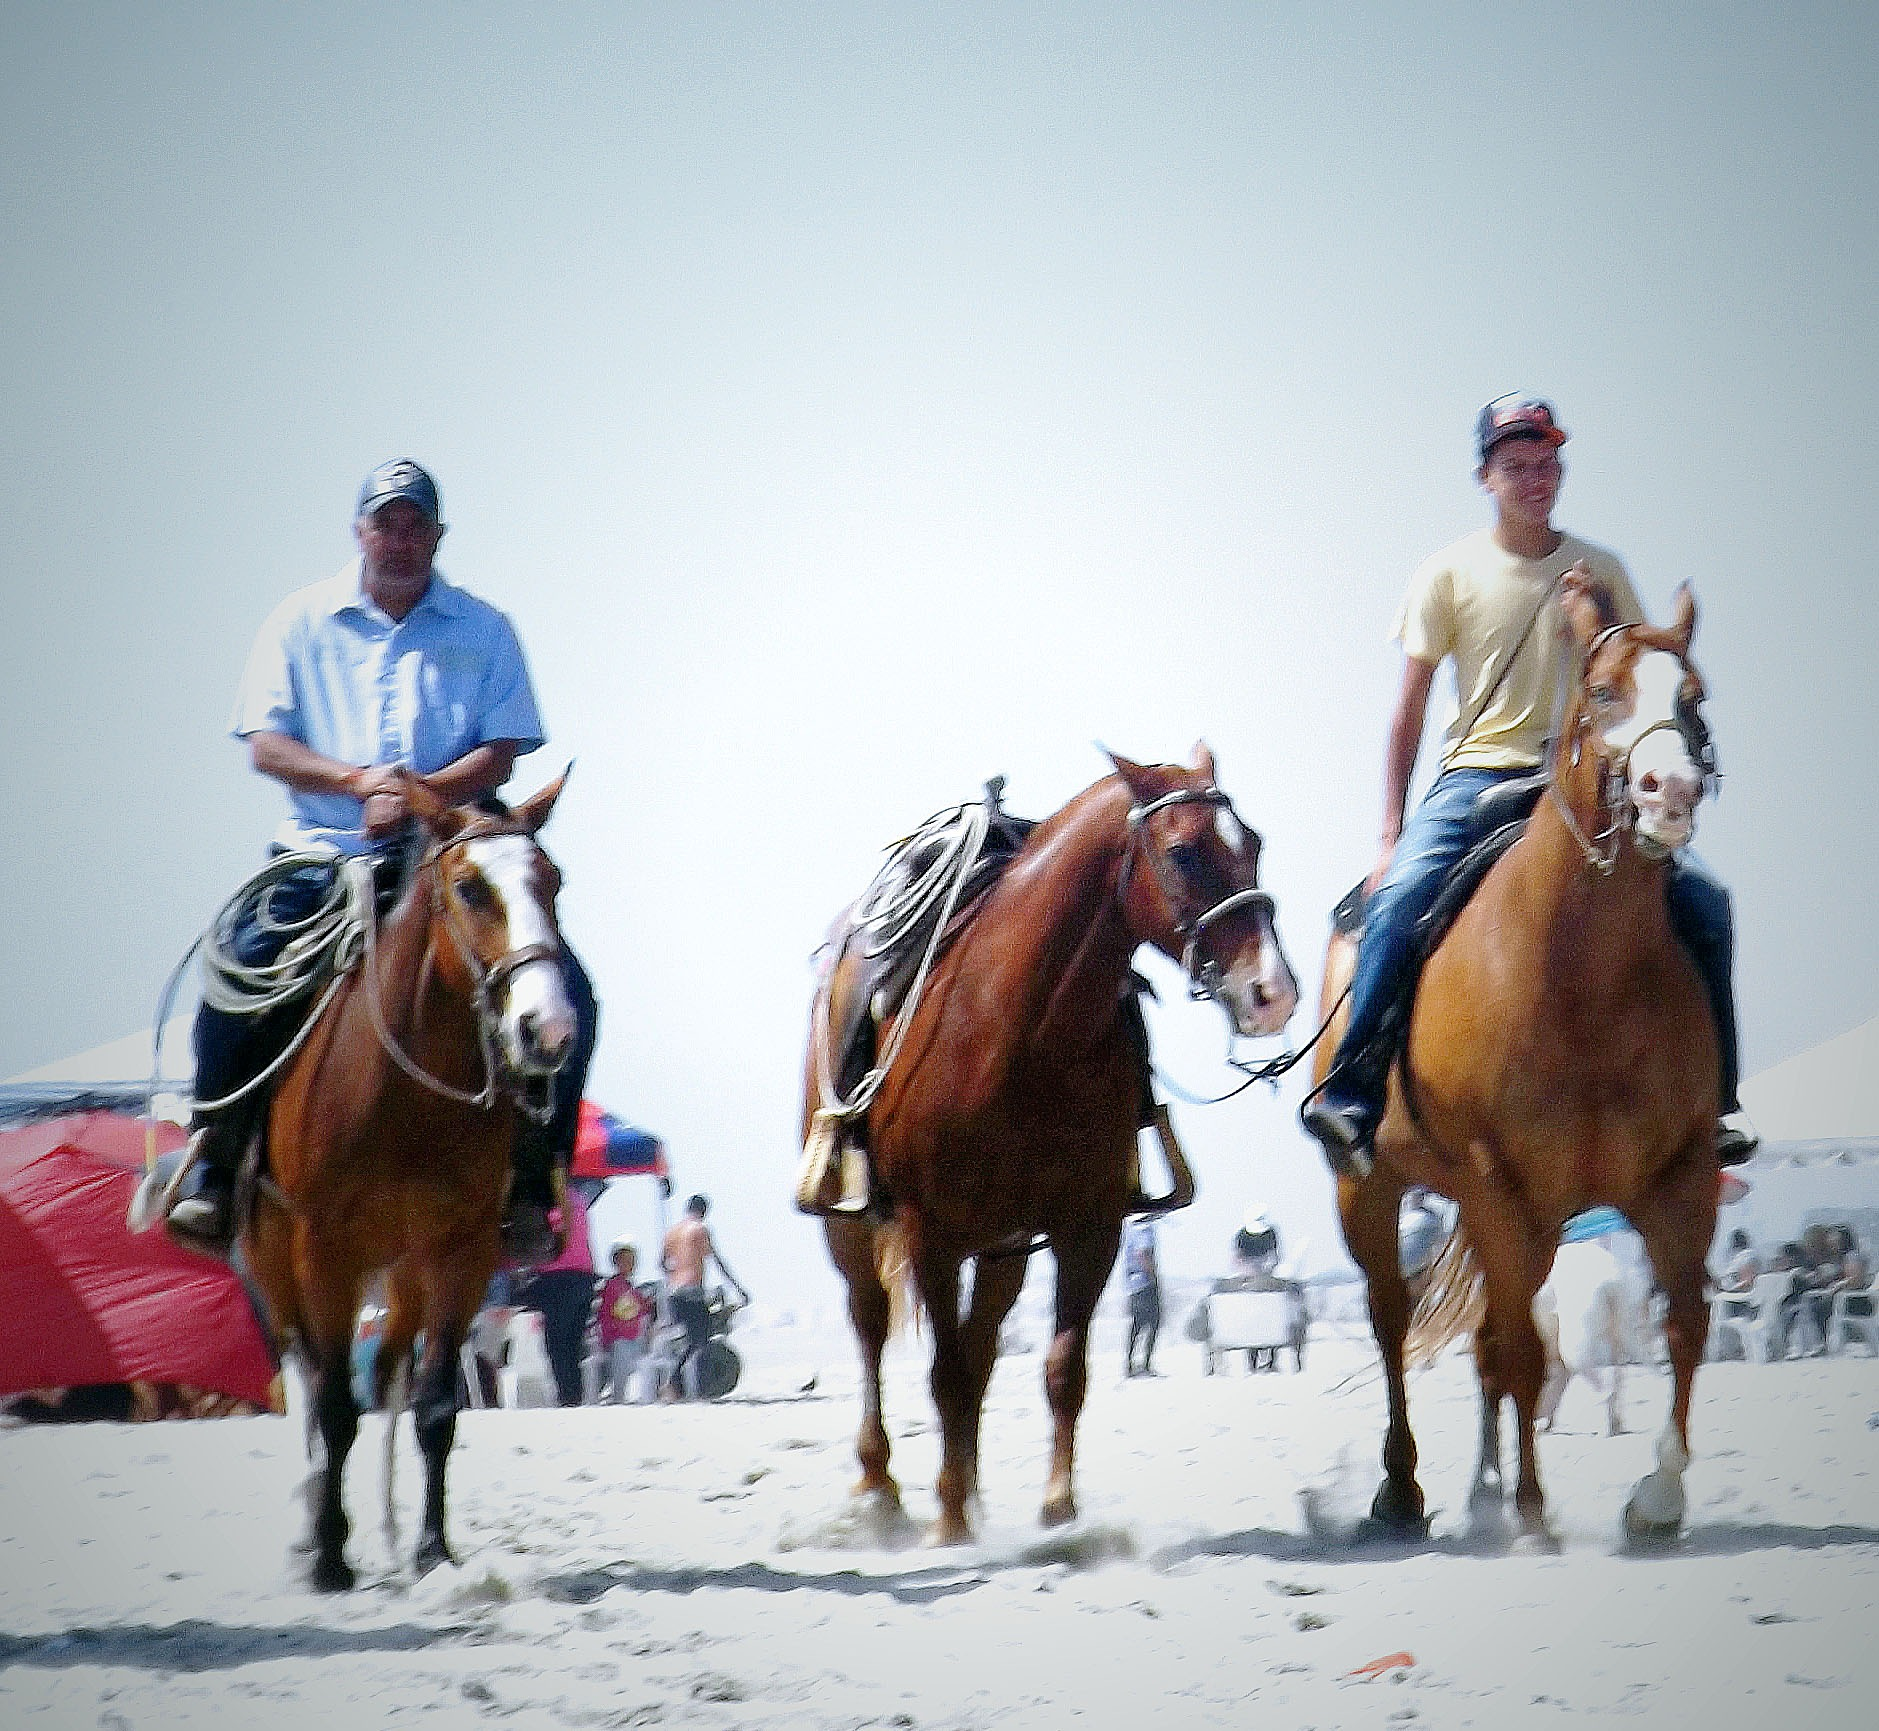 Riders on the beach  by Don